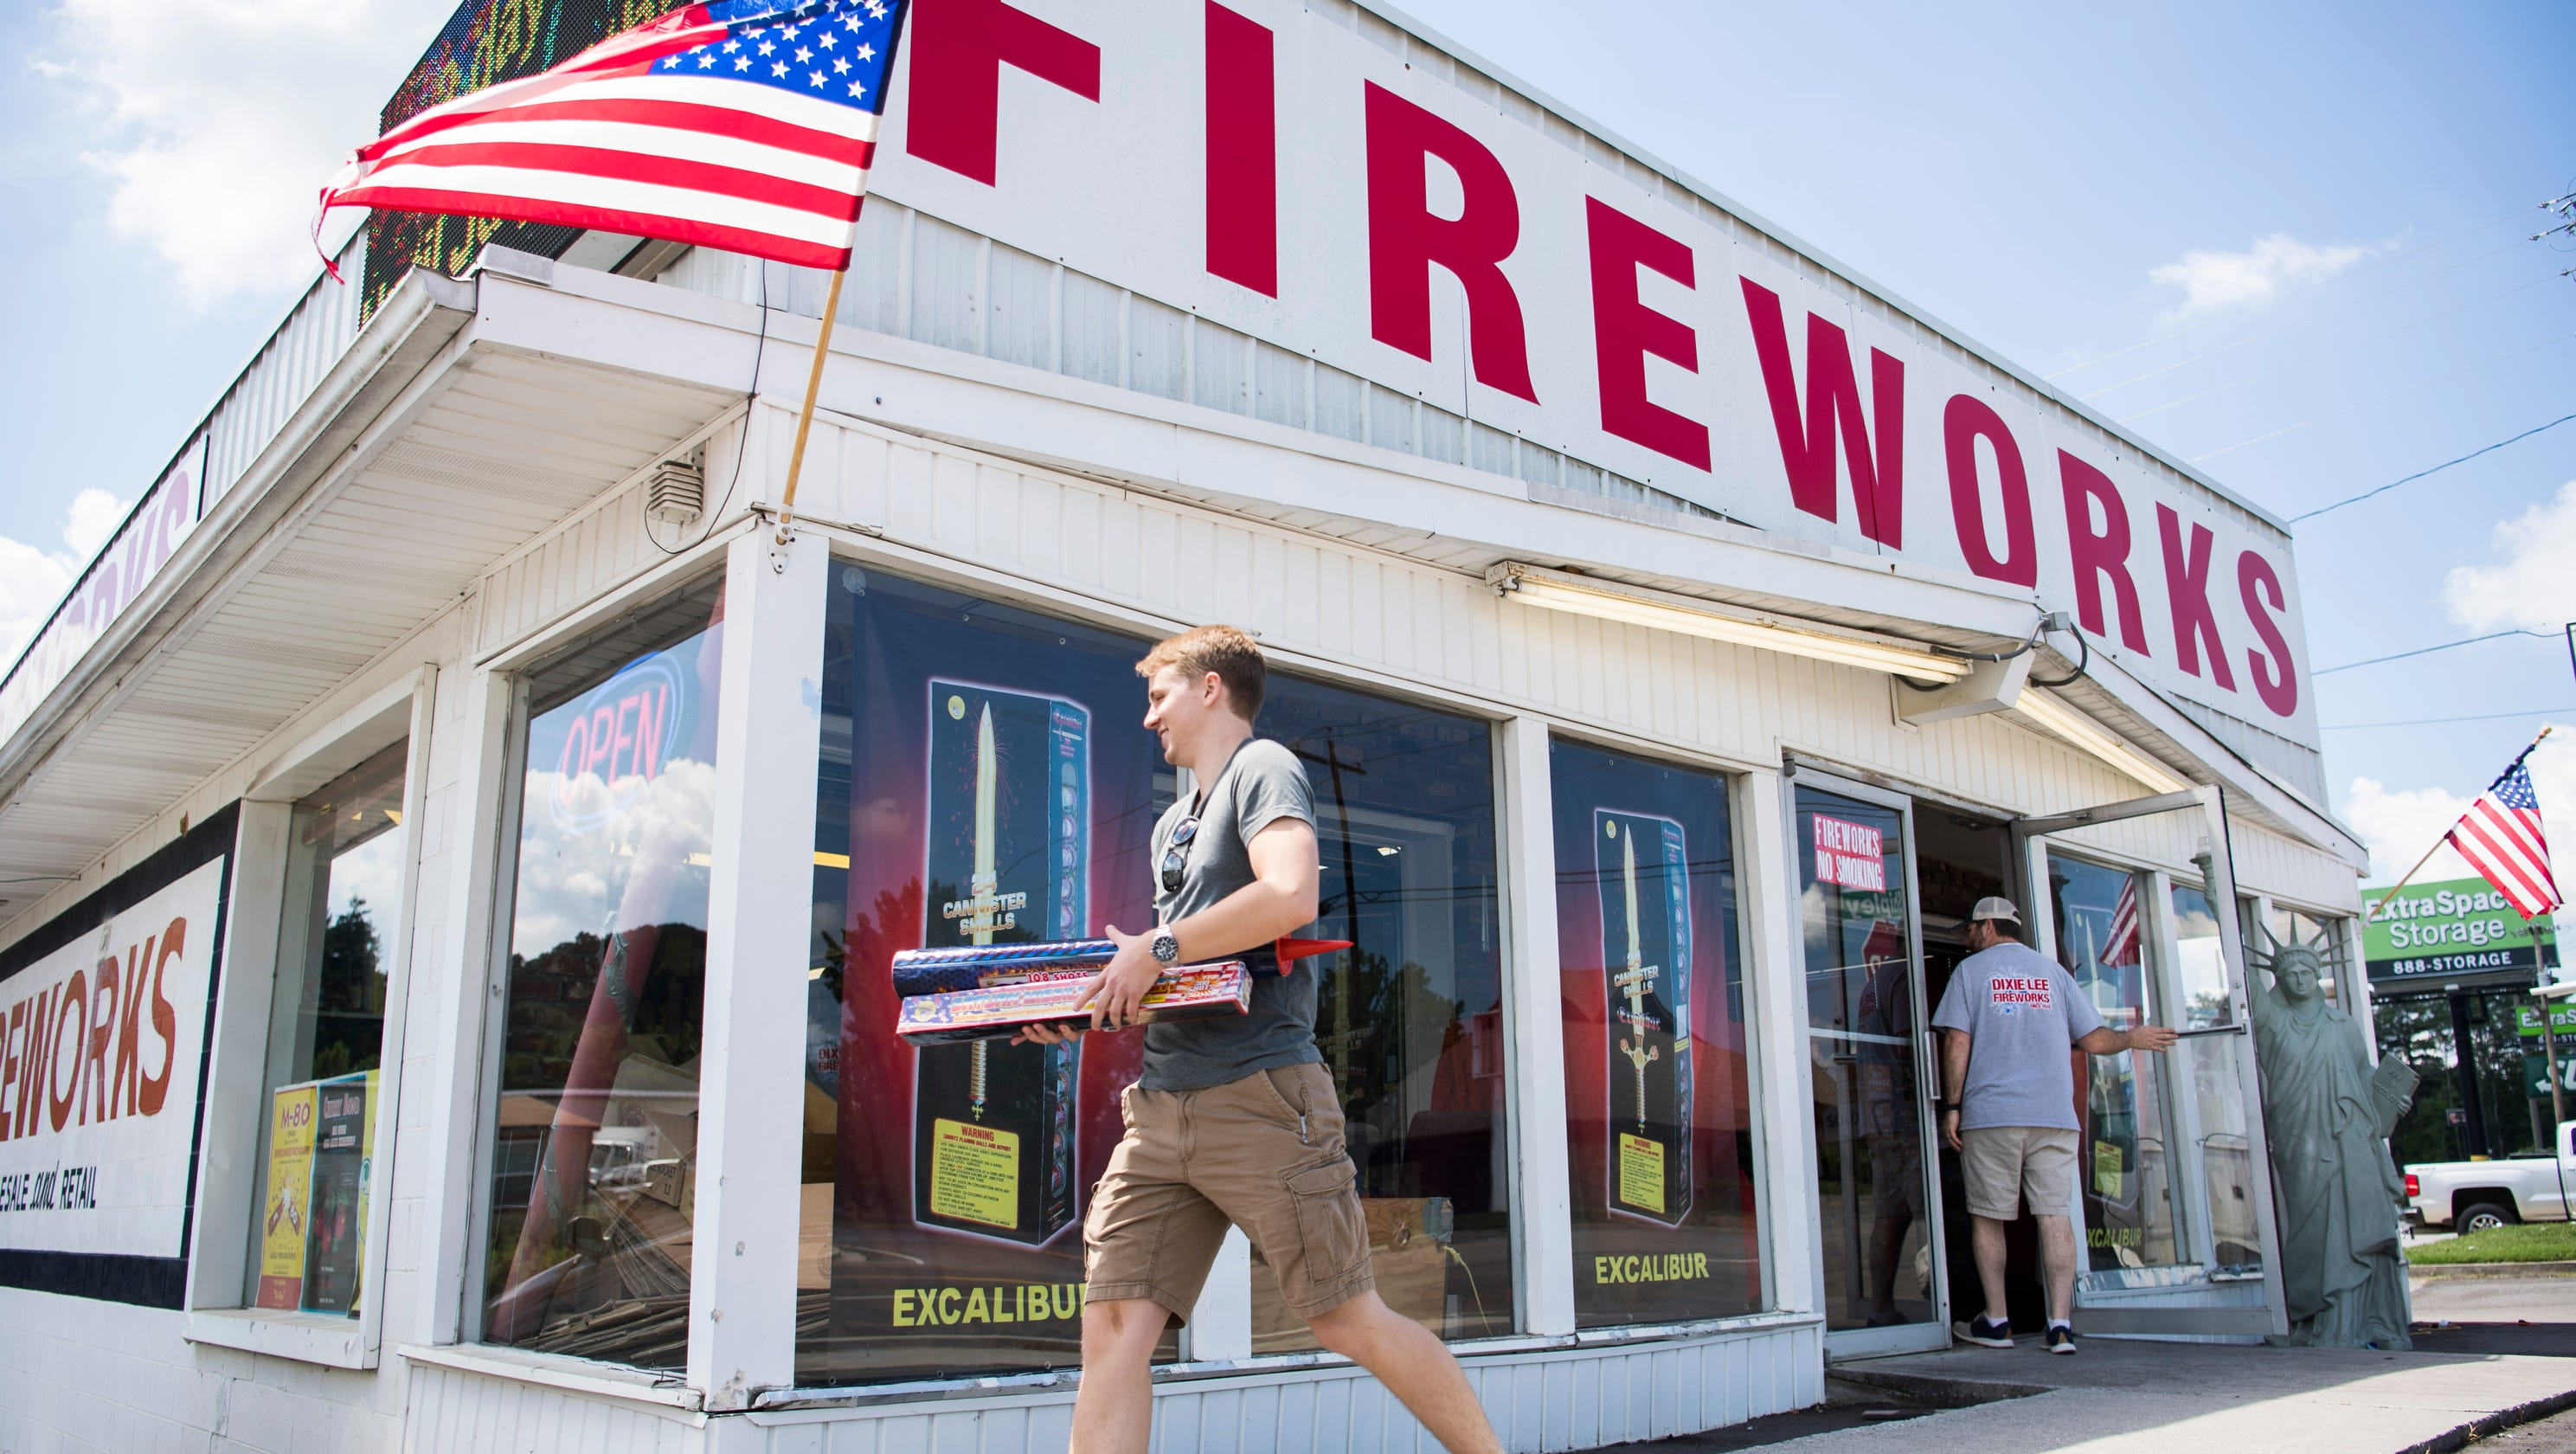 July 4th fireworks picks in Tennessee are about the big bang